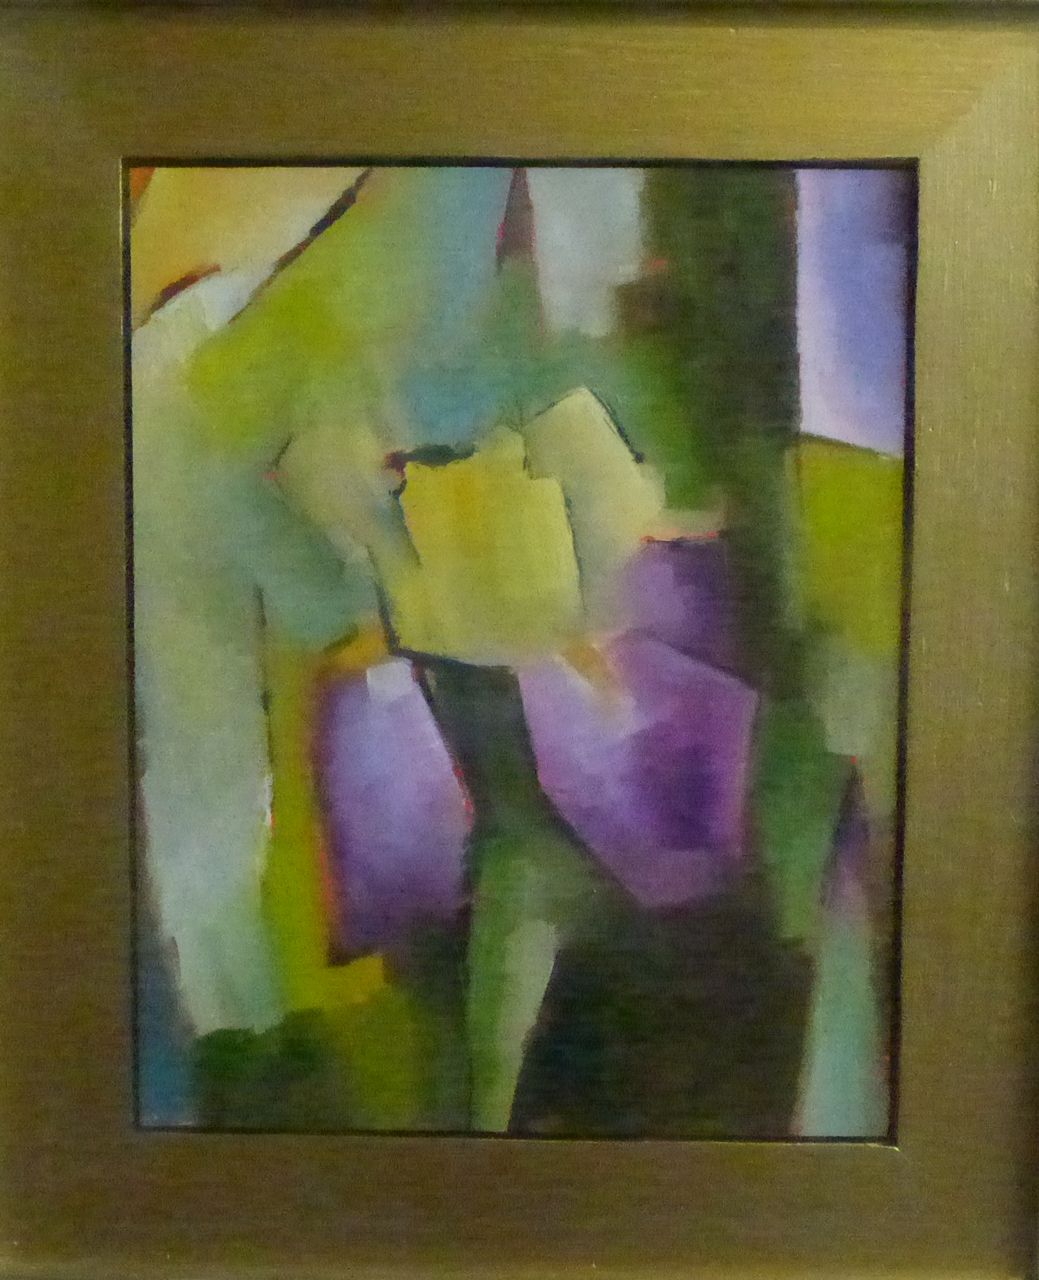 Abstract Painting Of Girl Dancing 147 Impressionist Iris Art Abstracts 2 Girl Dancing